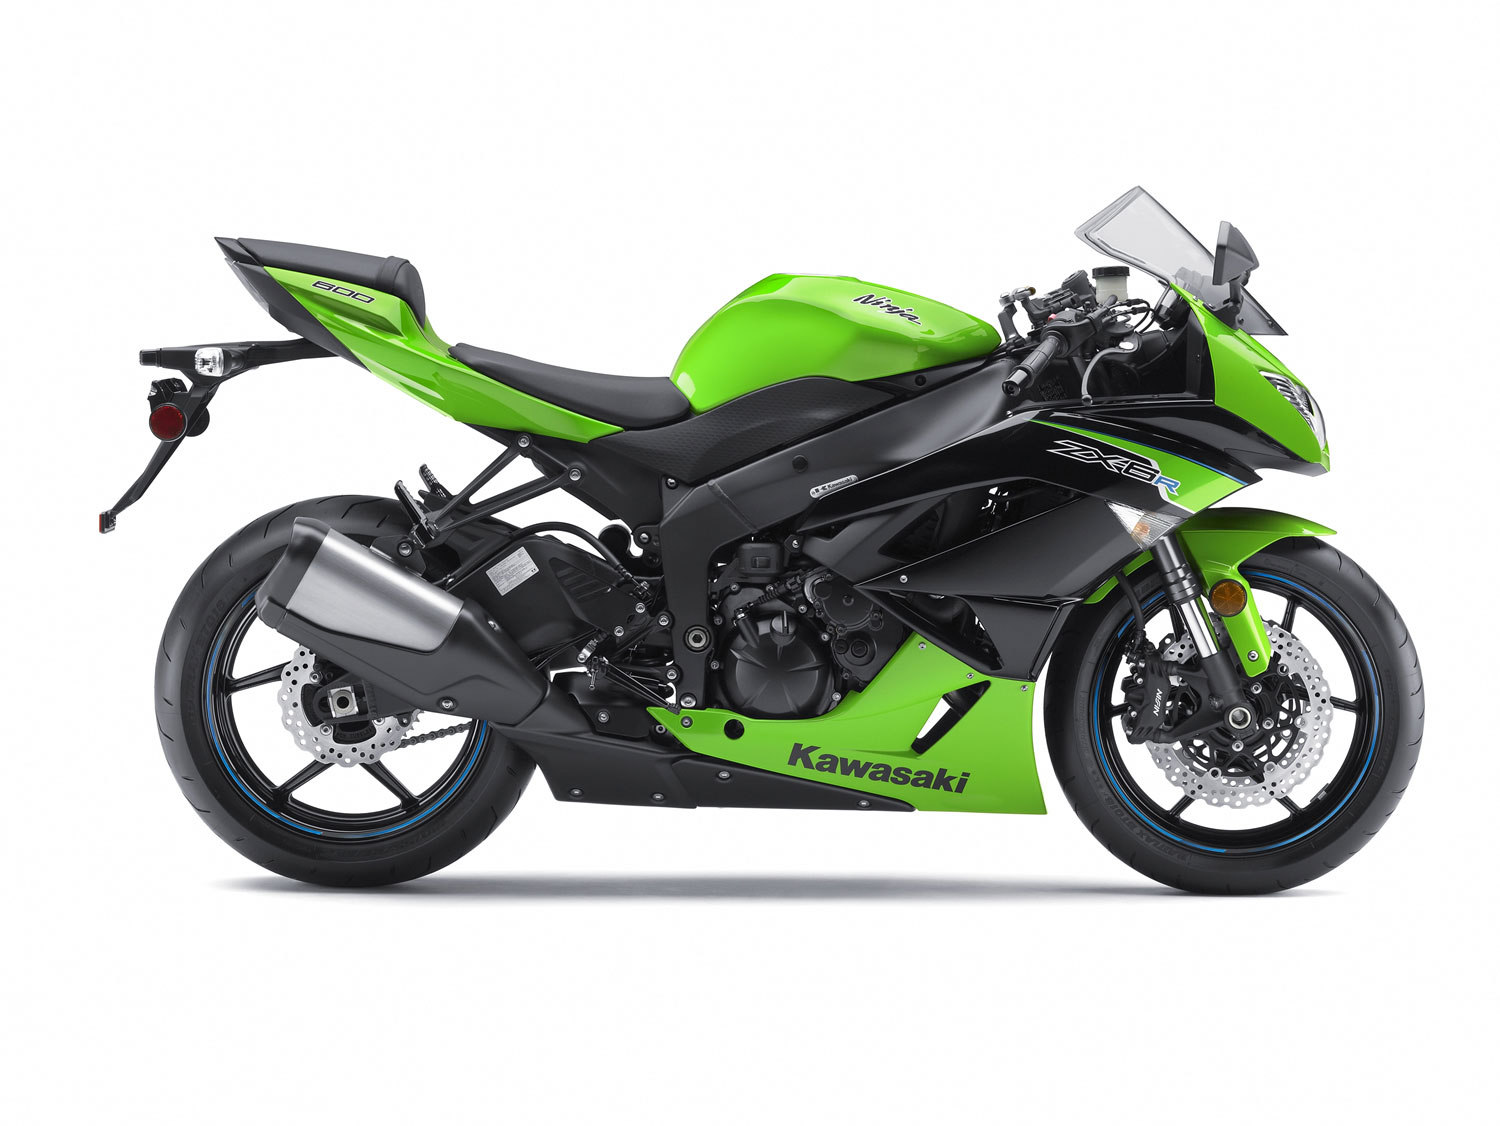 2012 kawasaki ninja zx 6r specs information pictures. Black Bedroom Furniture Sets. Home Design Ideas